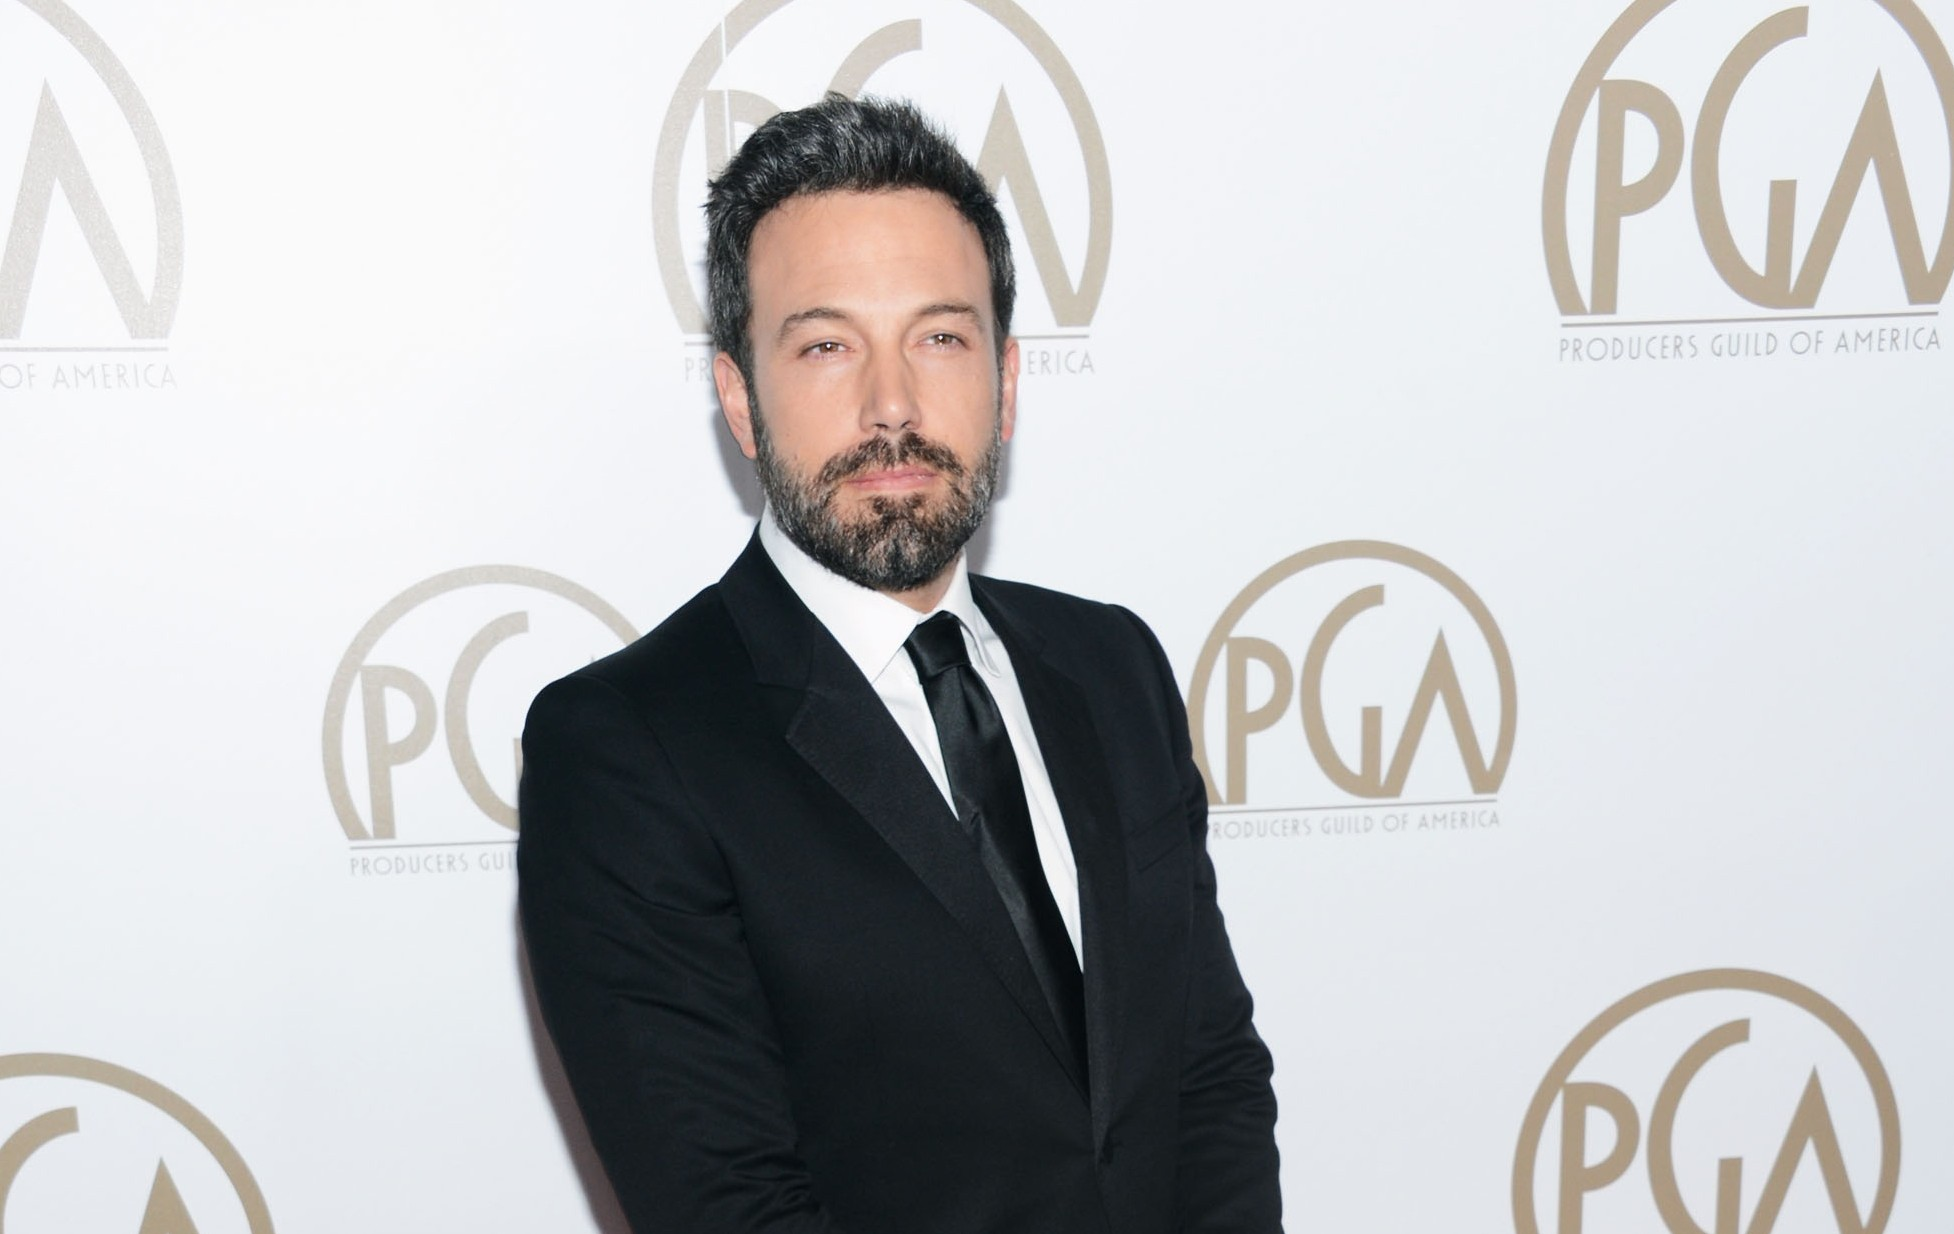 Argo's Oscar hopes boosted after Producers Guild Awards win